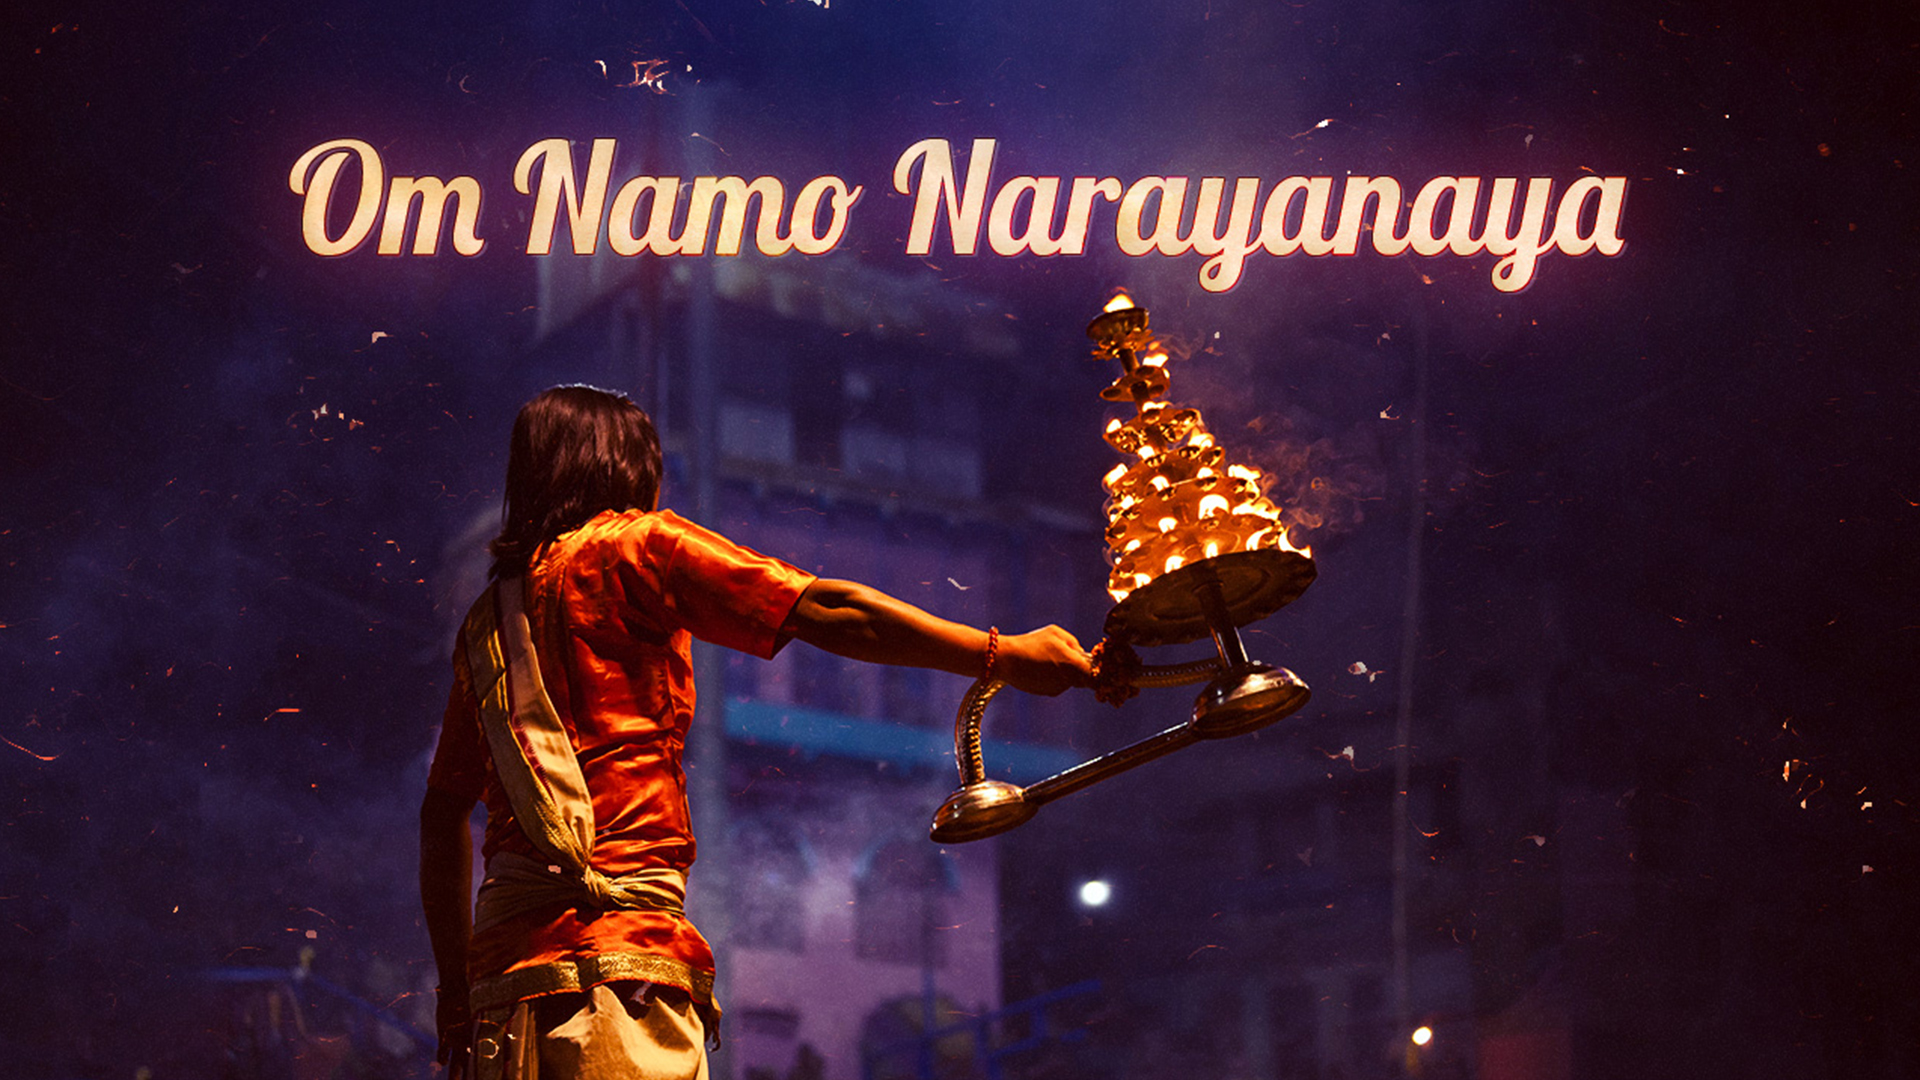 OM NAMO NARAYANAYA – Meaning & Benefits